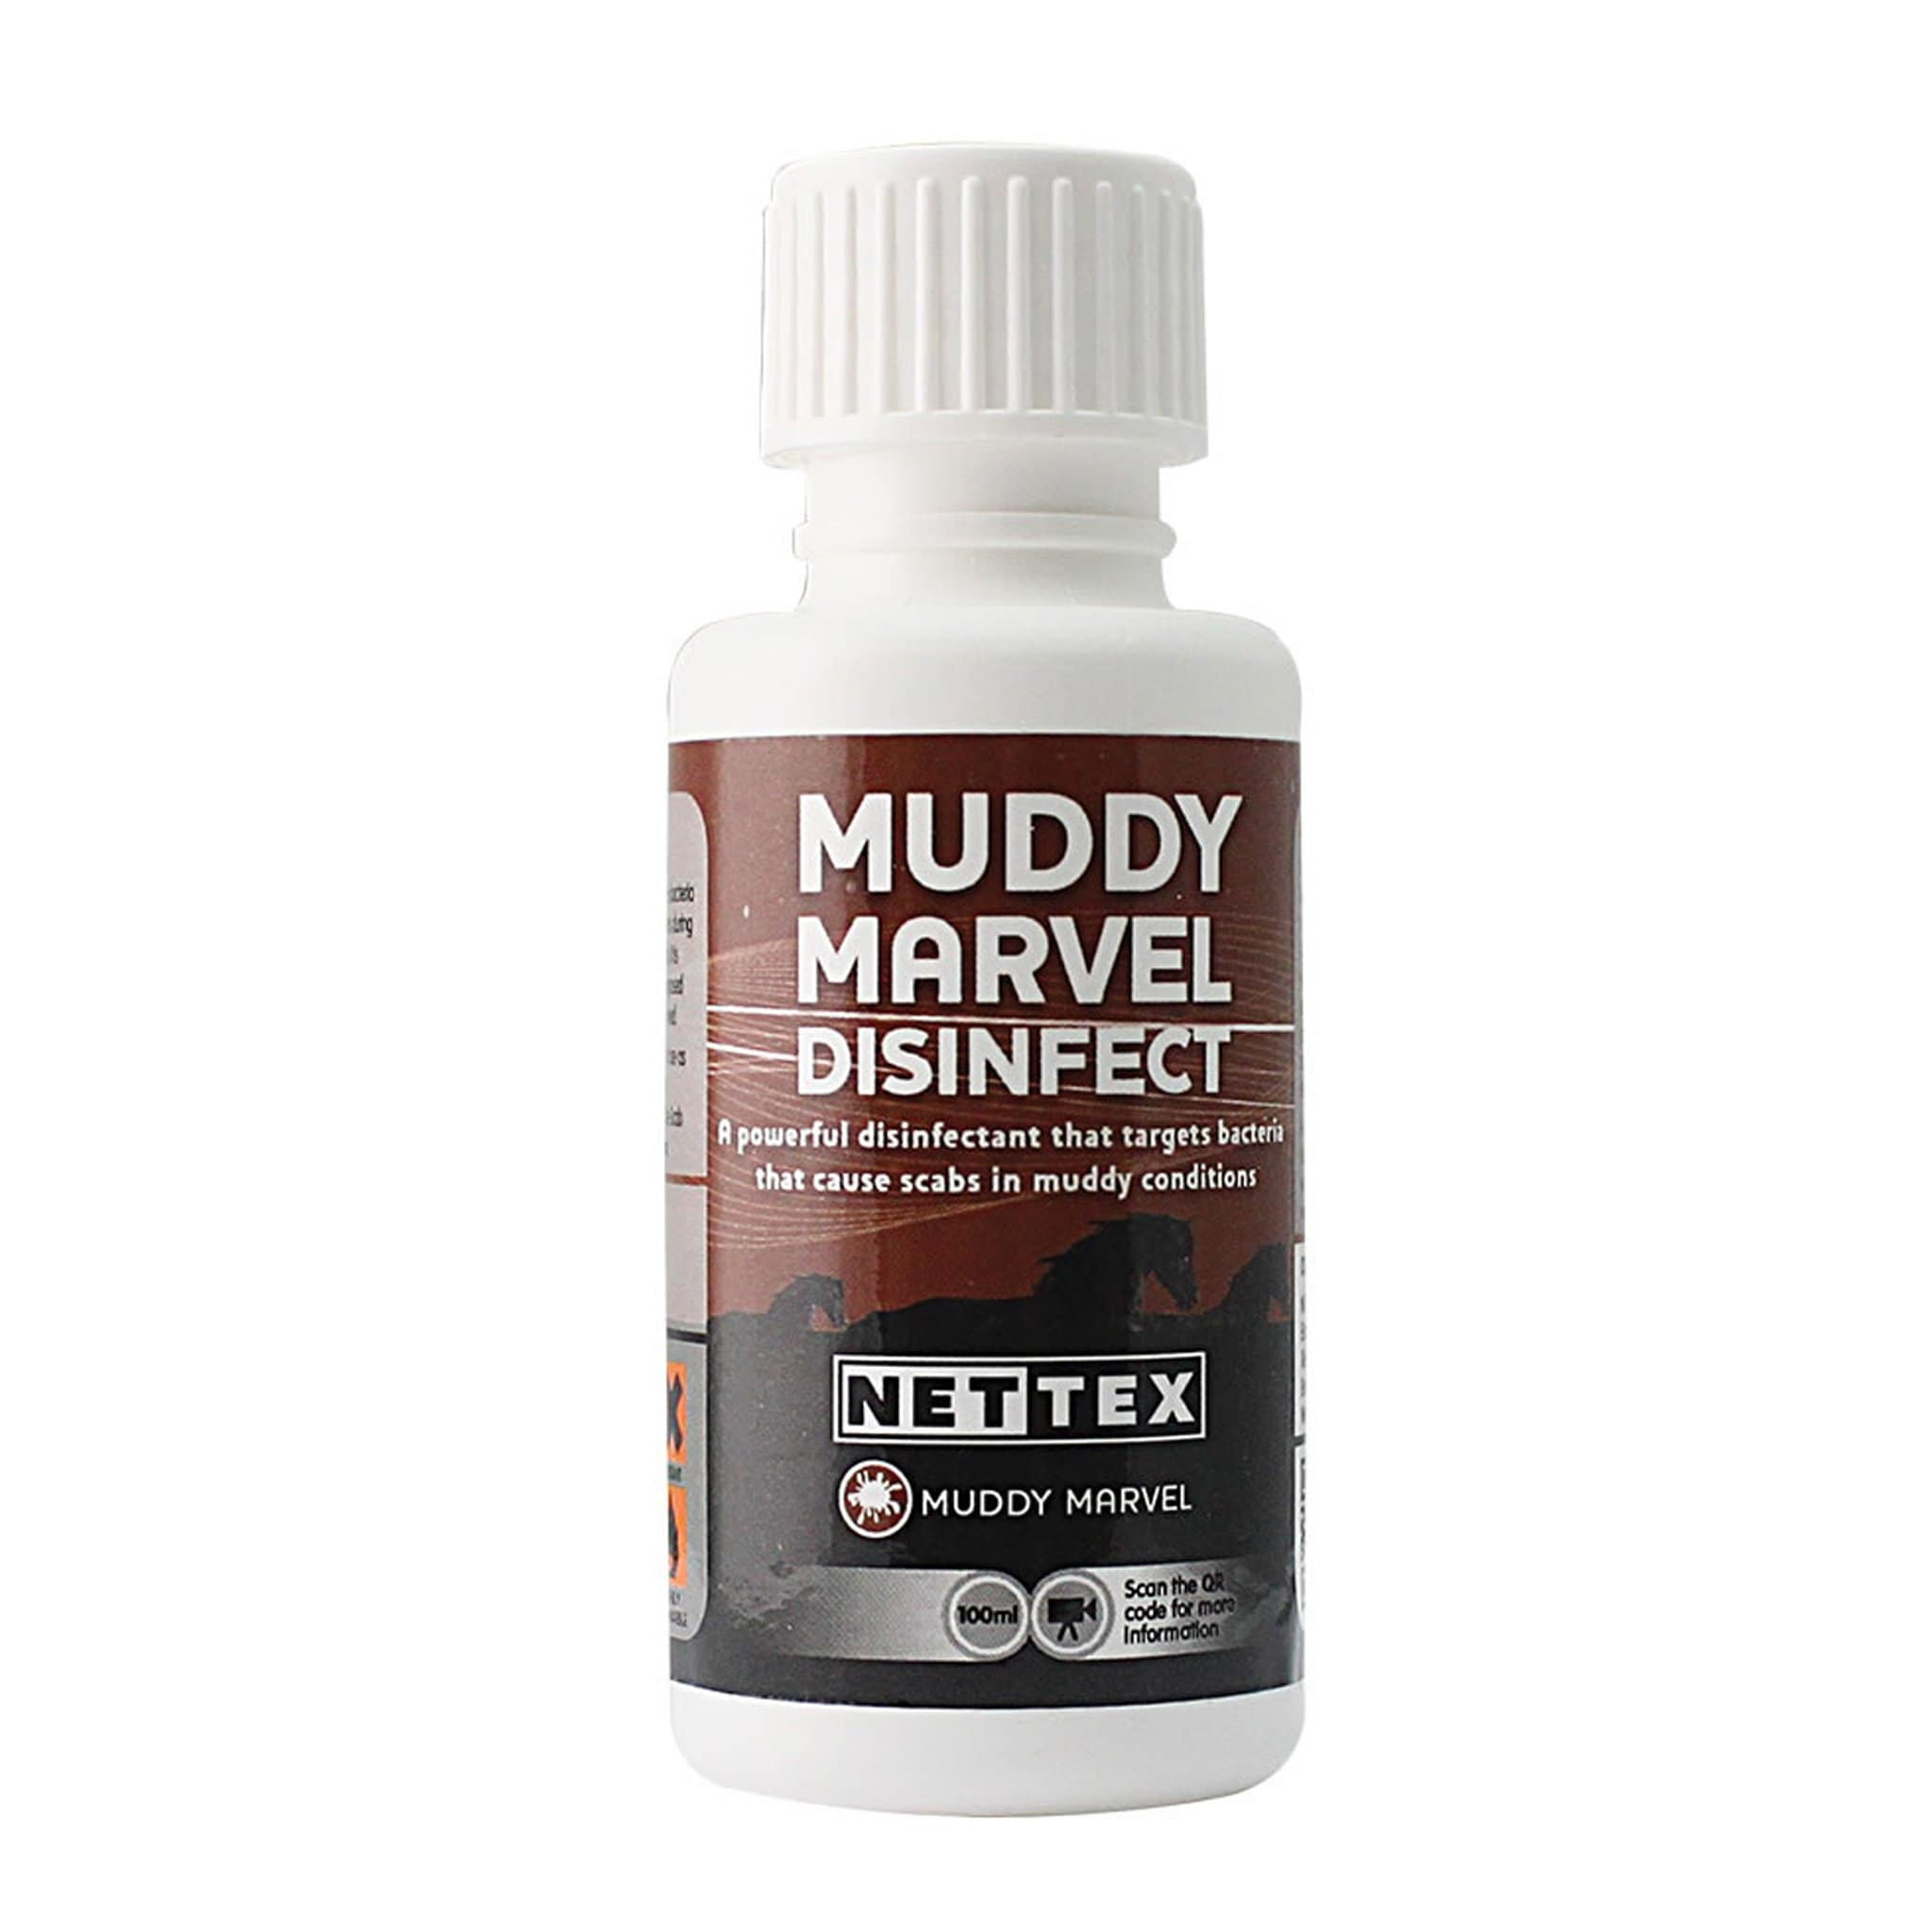 Nettex Equine Muddy Marvel Disinfect NET0255 100ml